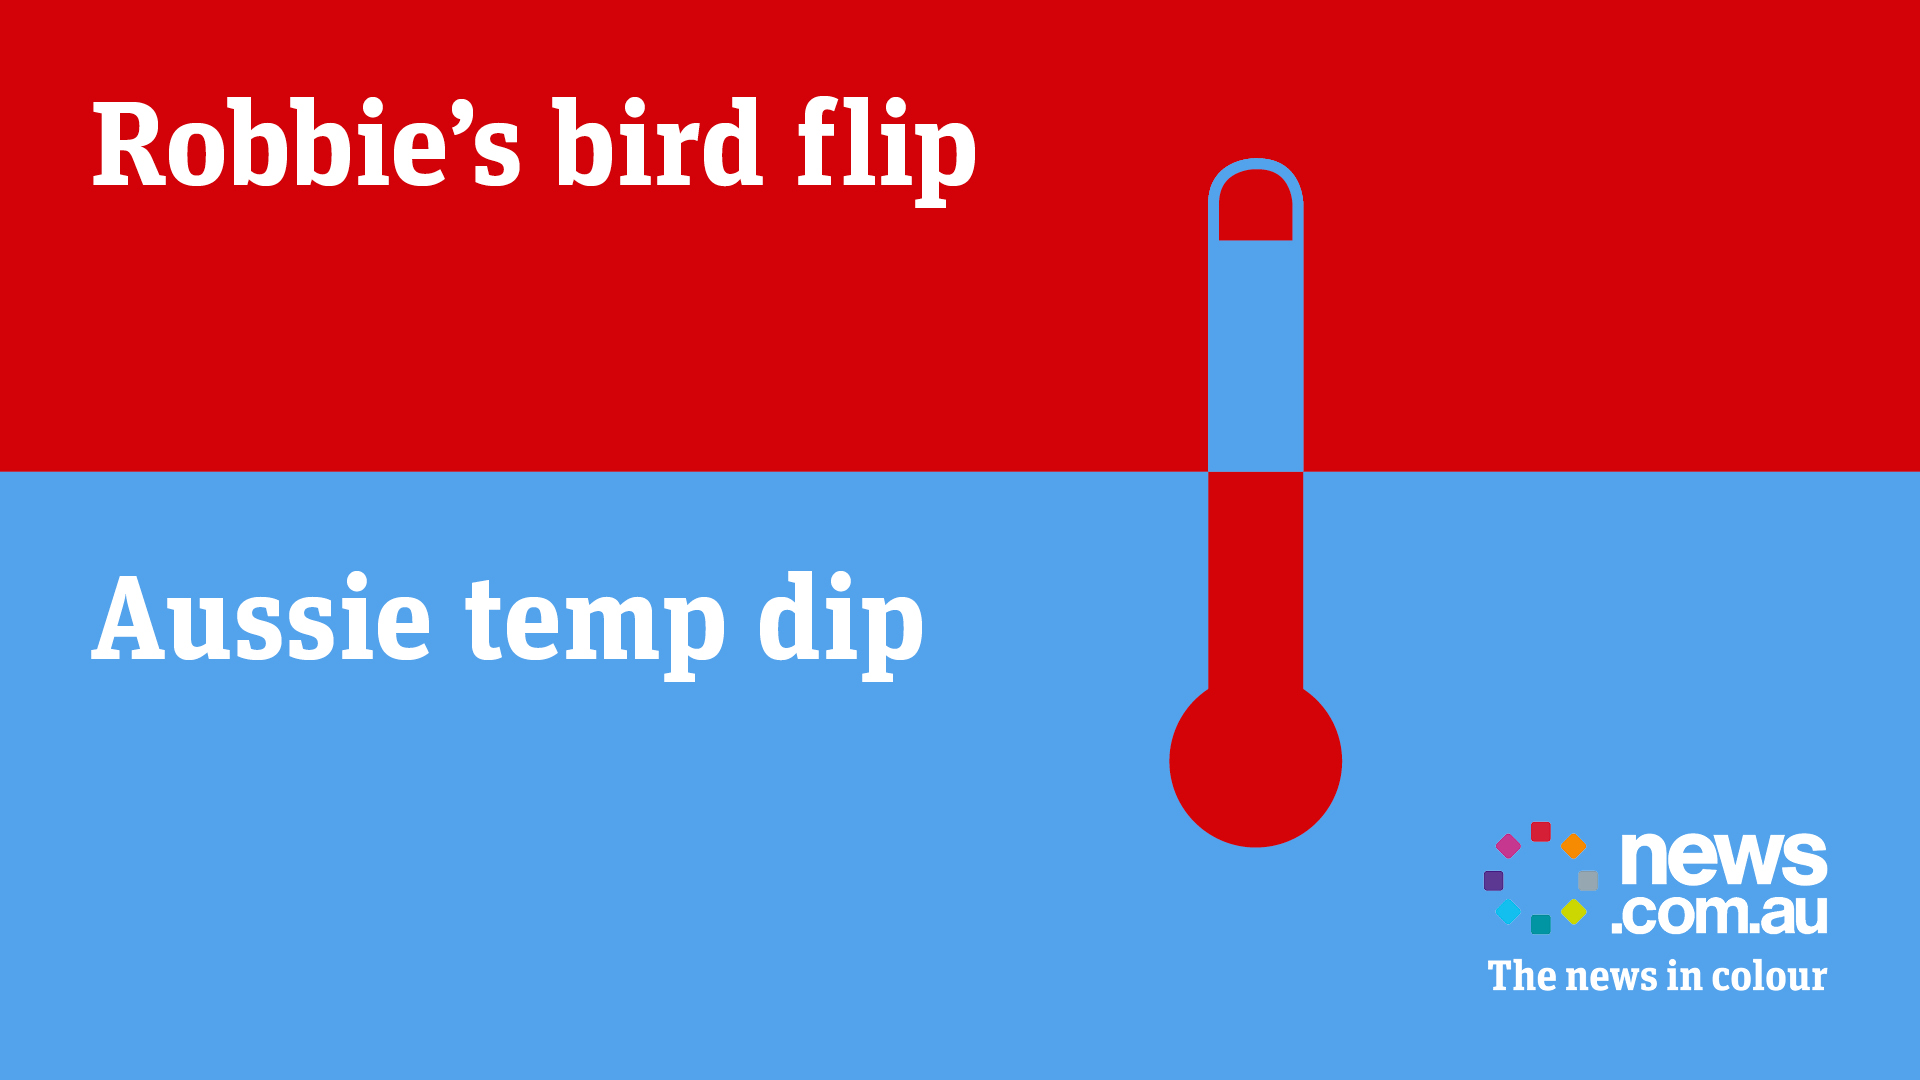 News.com.au_Robbie's Bird Flip-Temp Dip OOH